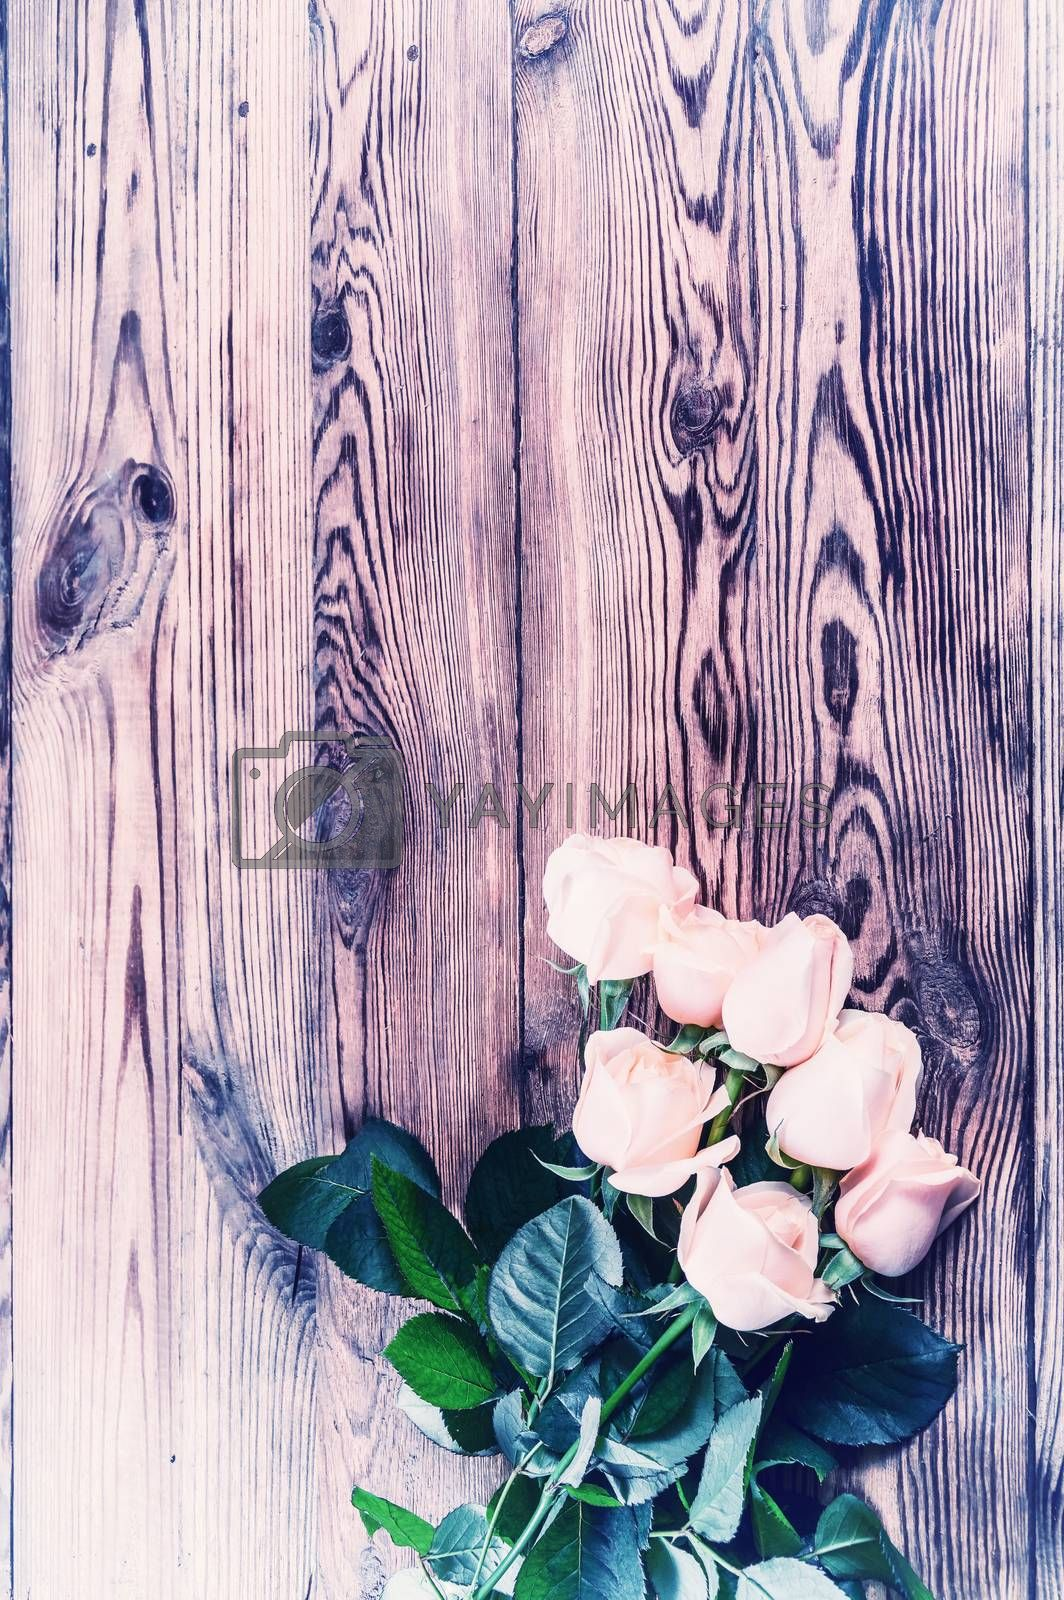 Vintage Roses on rustic wooden table